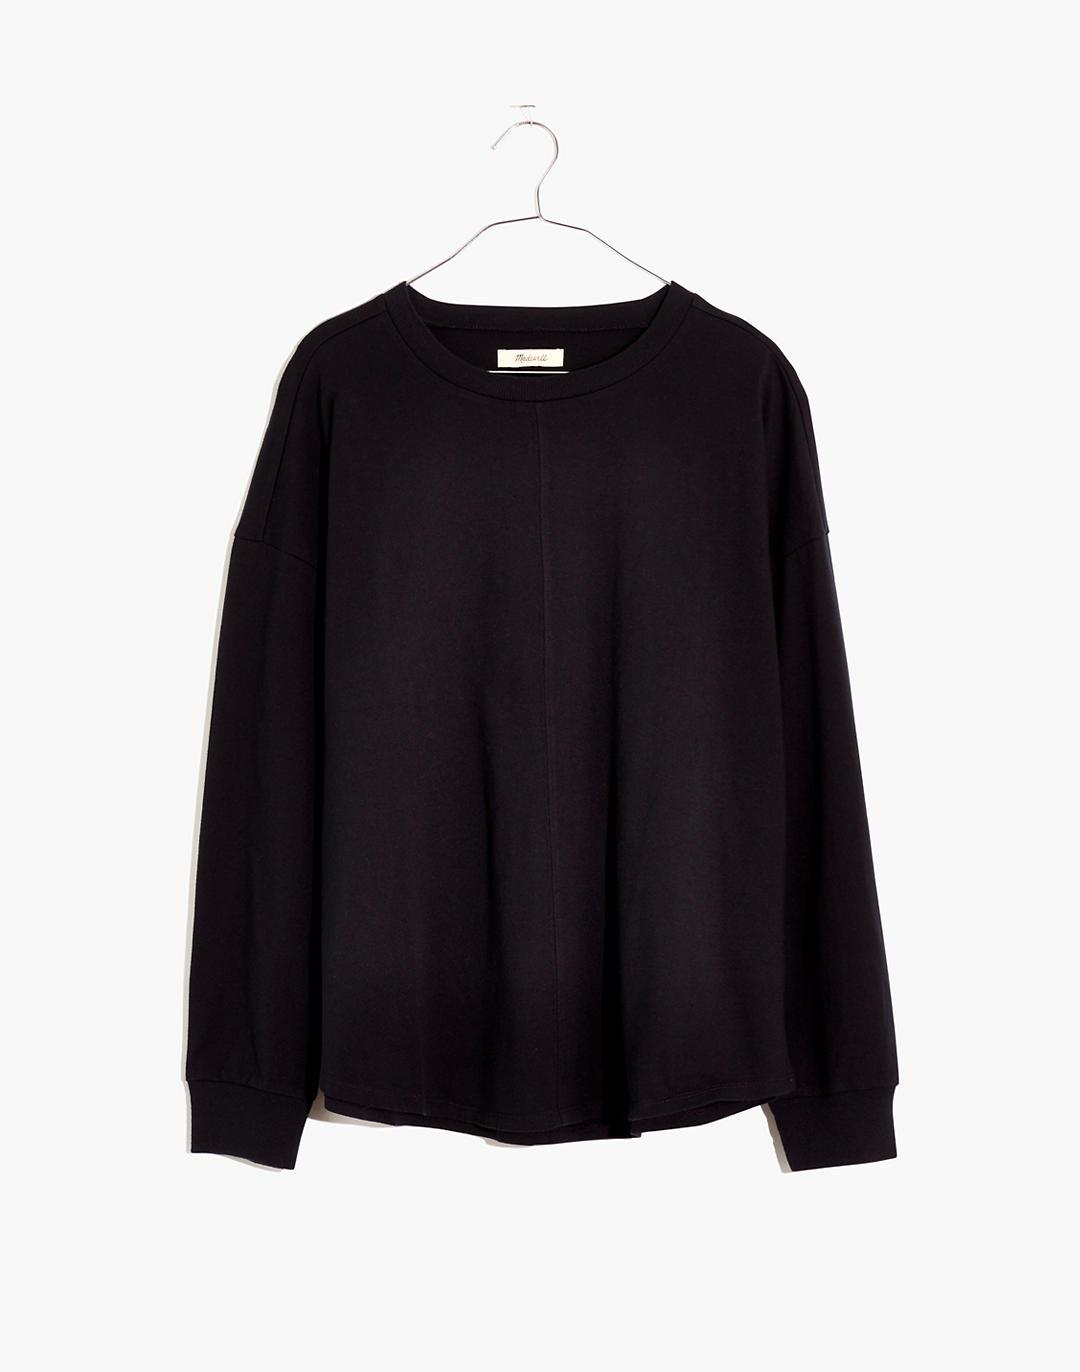 (Re)sourced Cotton Newville Tee